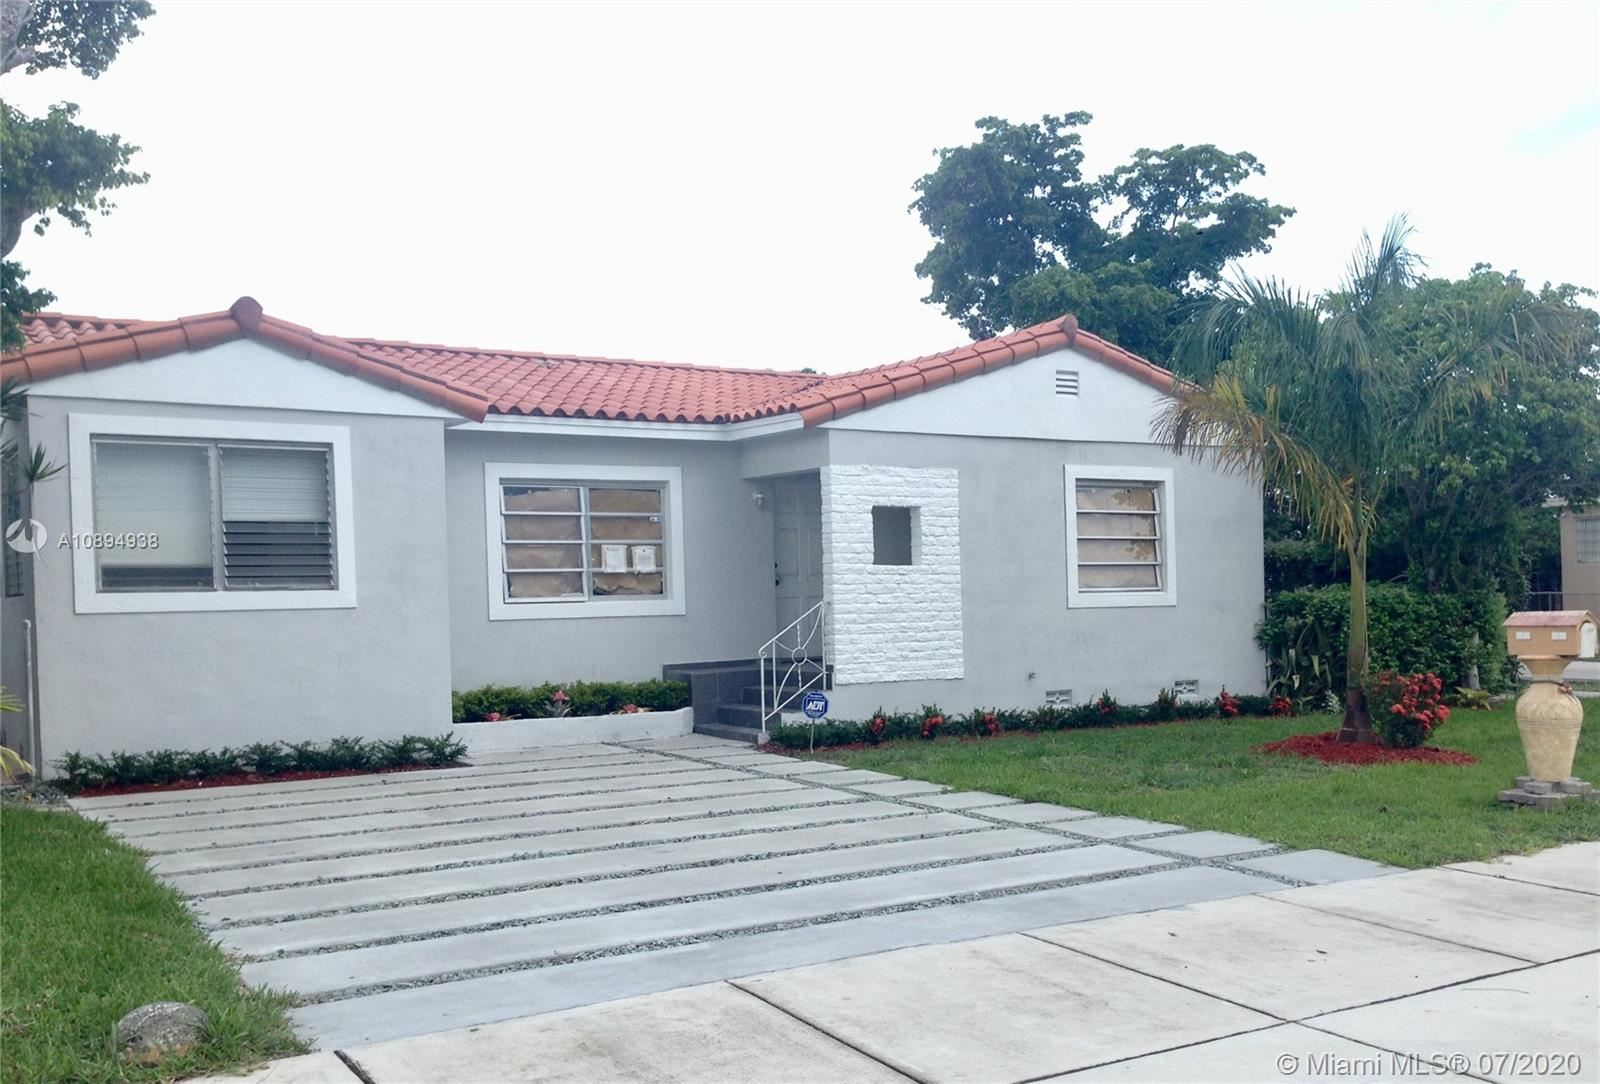 1065 SW 62nd Ave, West Miami, FL 33144 - #: A10894938